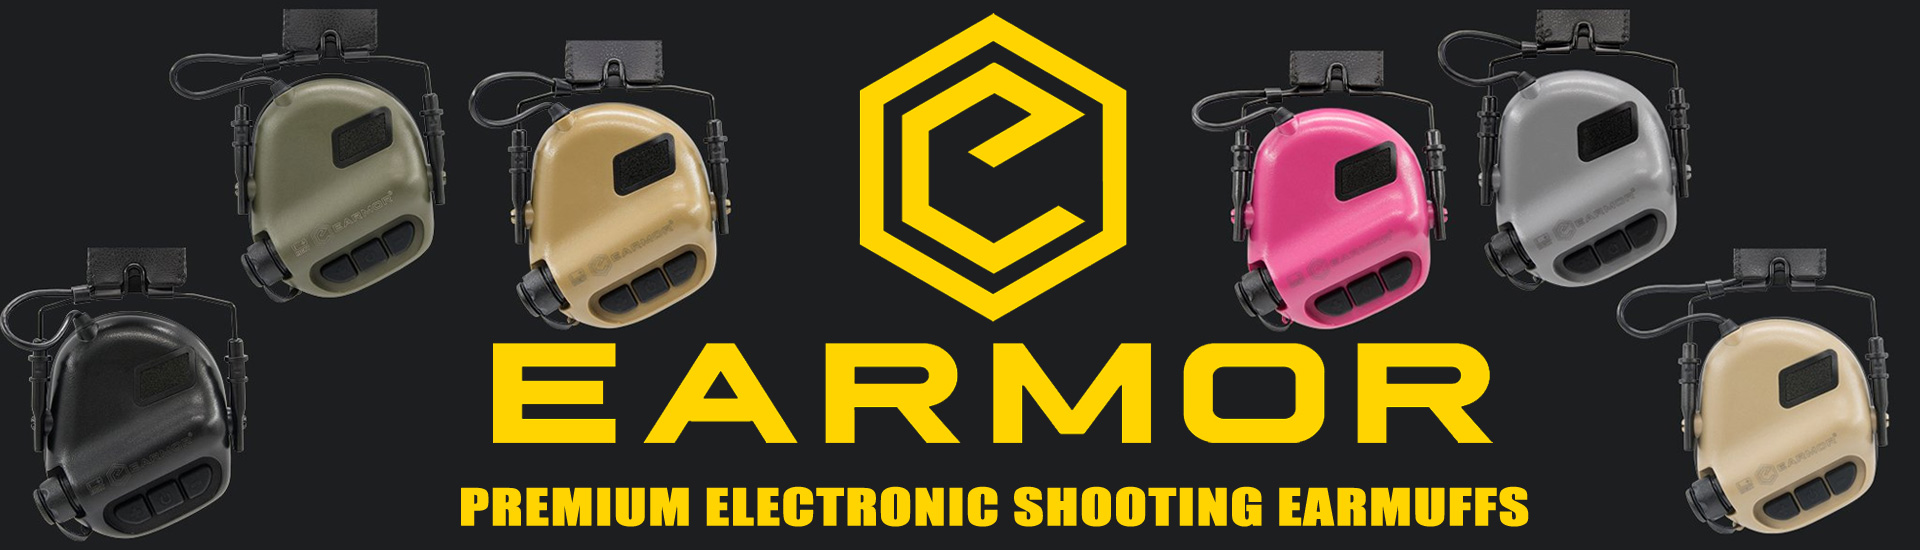 Earmor - Shooting Earmuffs